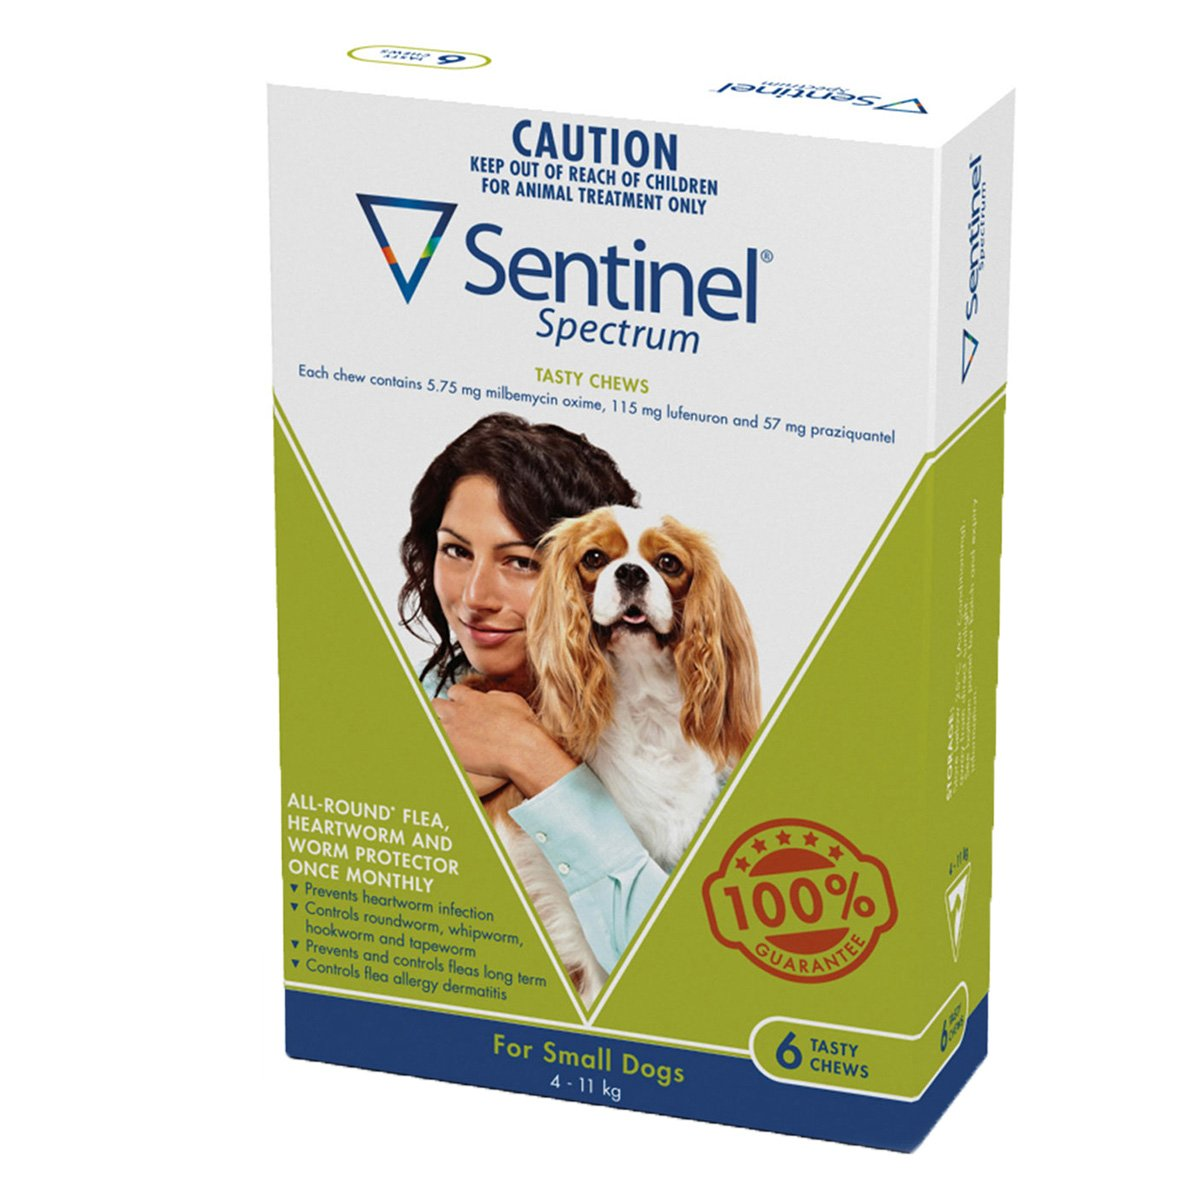 6p Sentinel Spectrum for Small Dogs 4-11 kgs 6 Pack Green